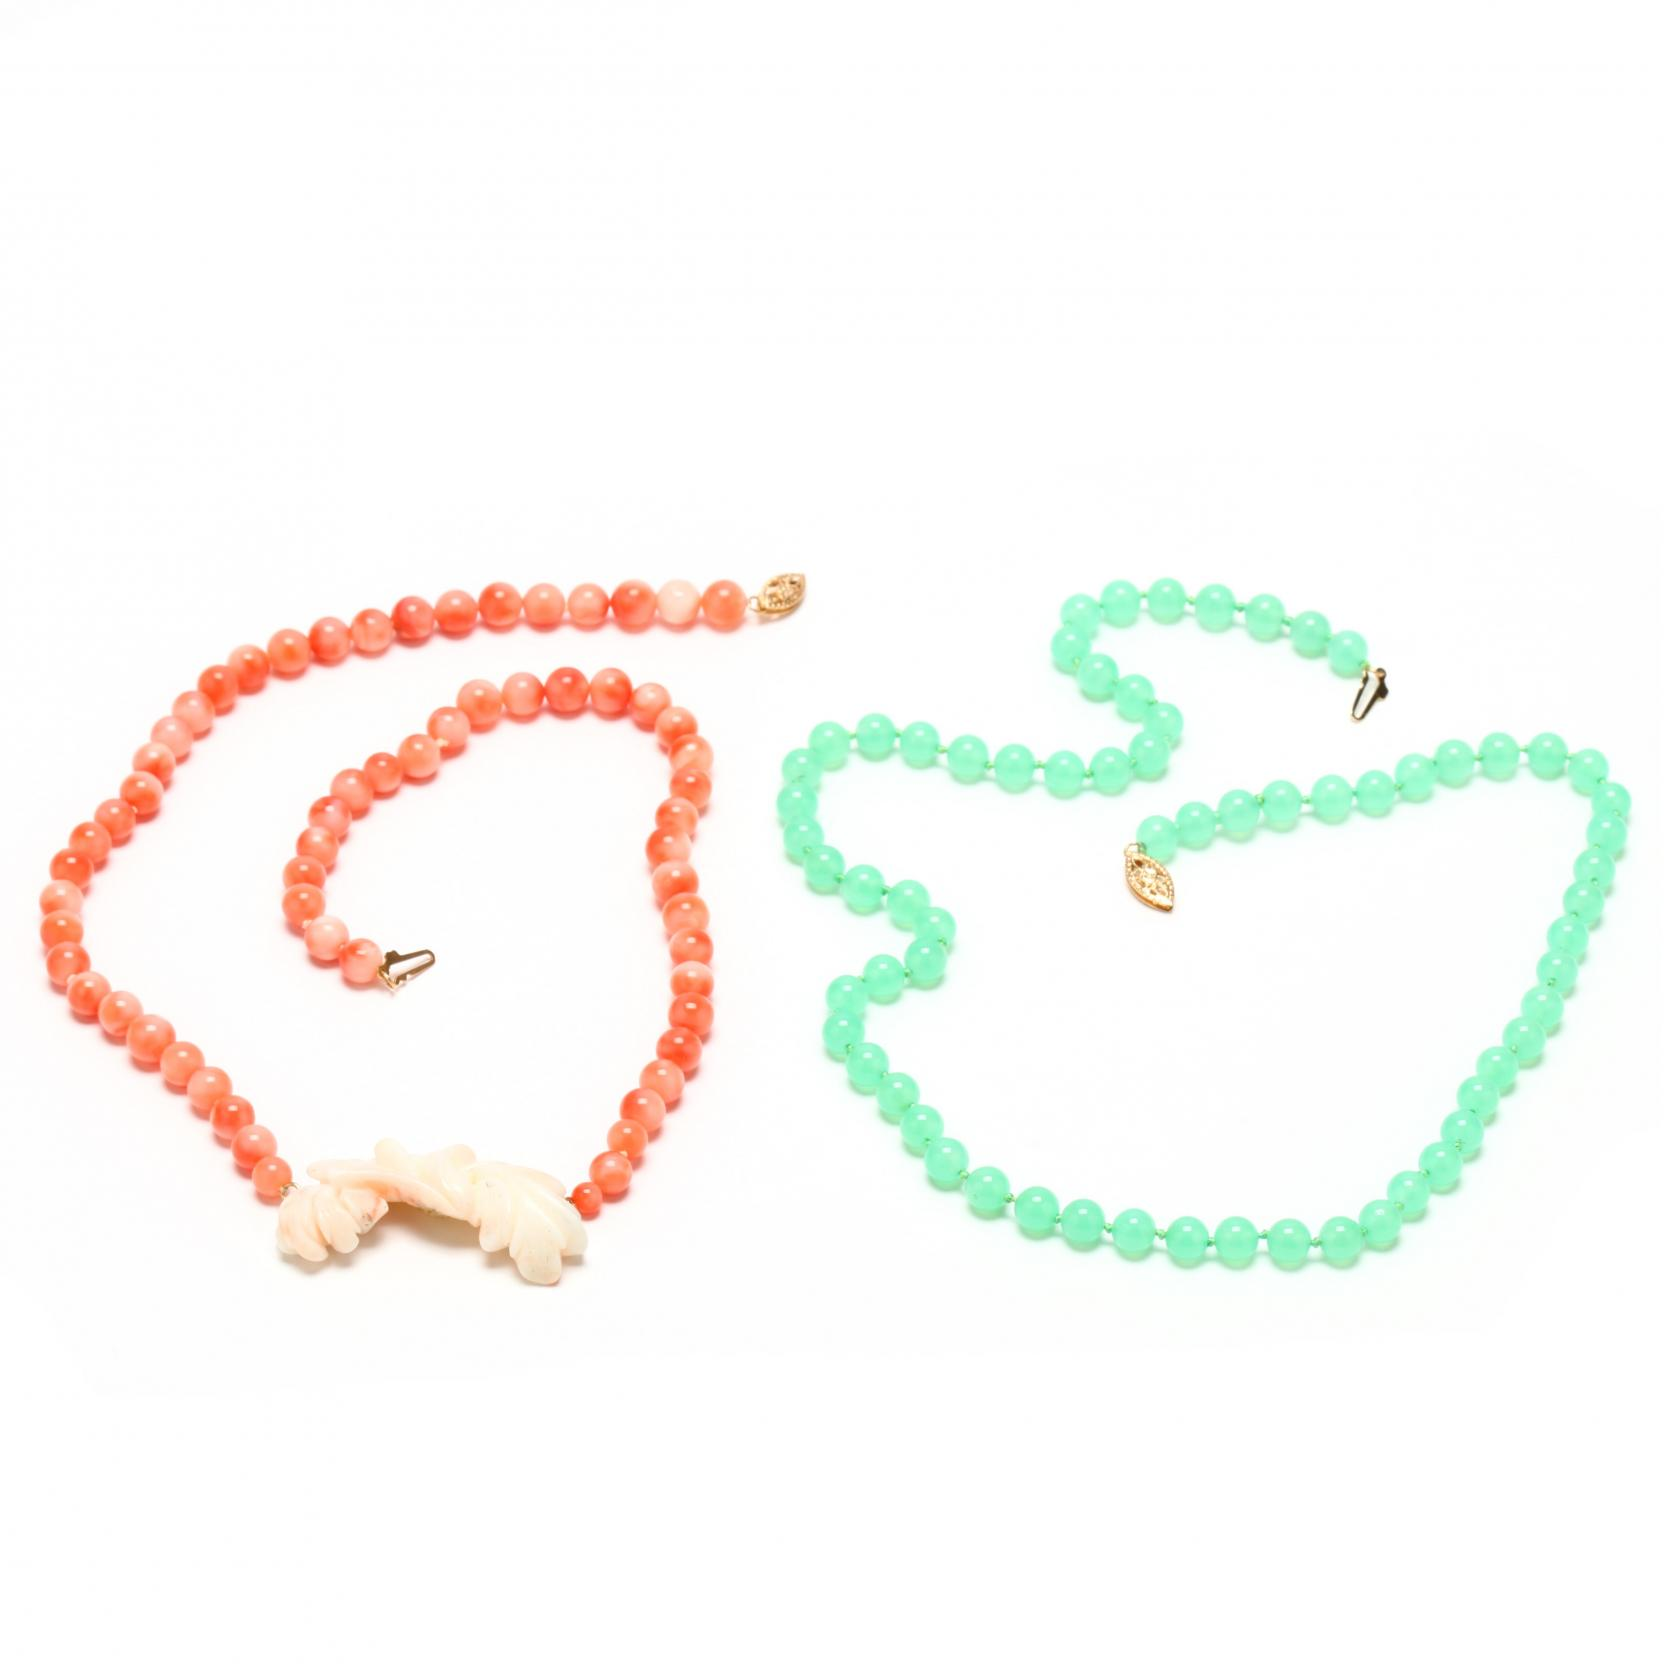 a-coral-necklace-and-jade-bead-necklace